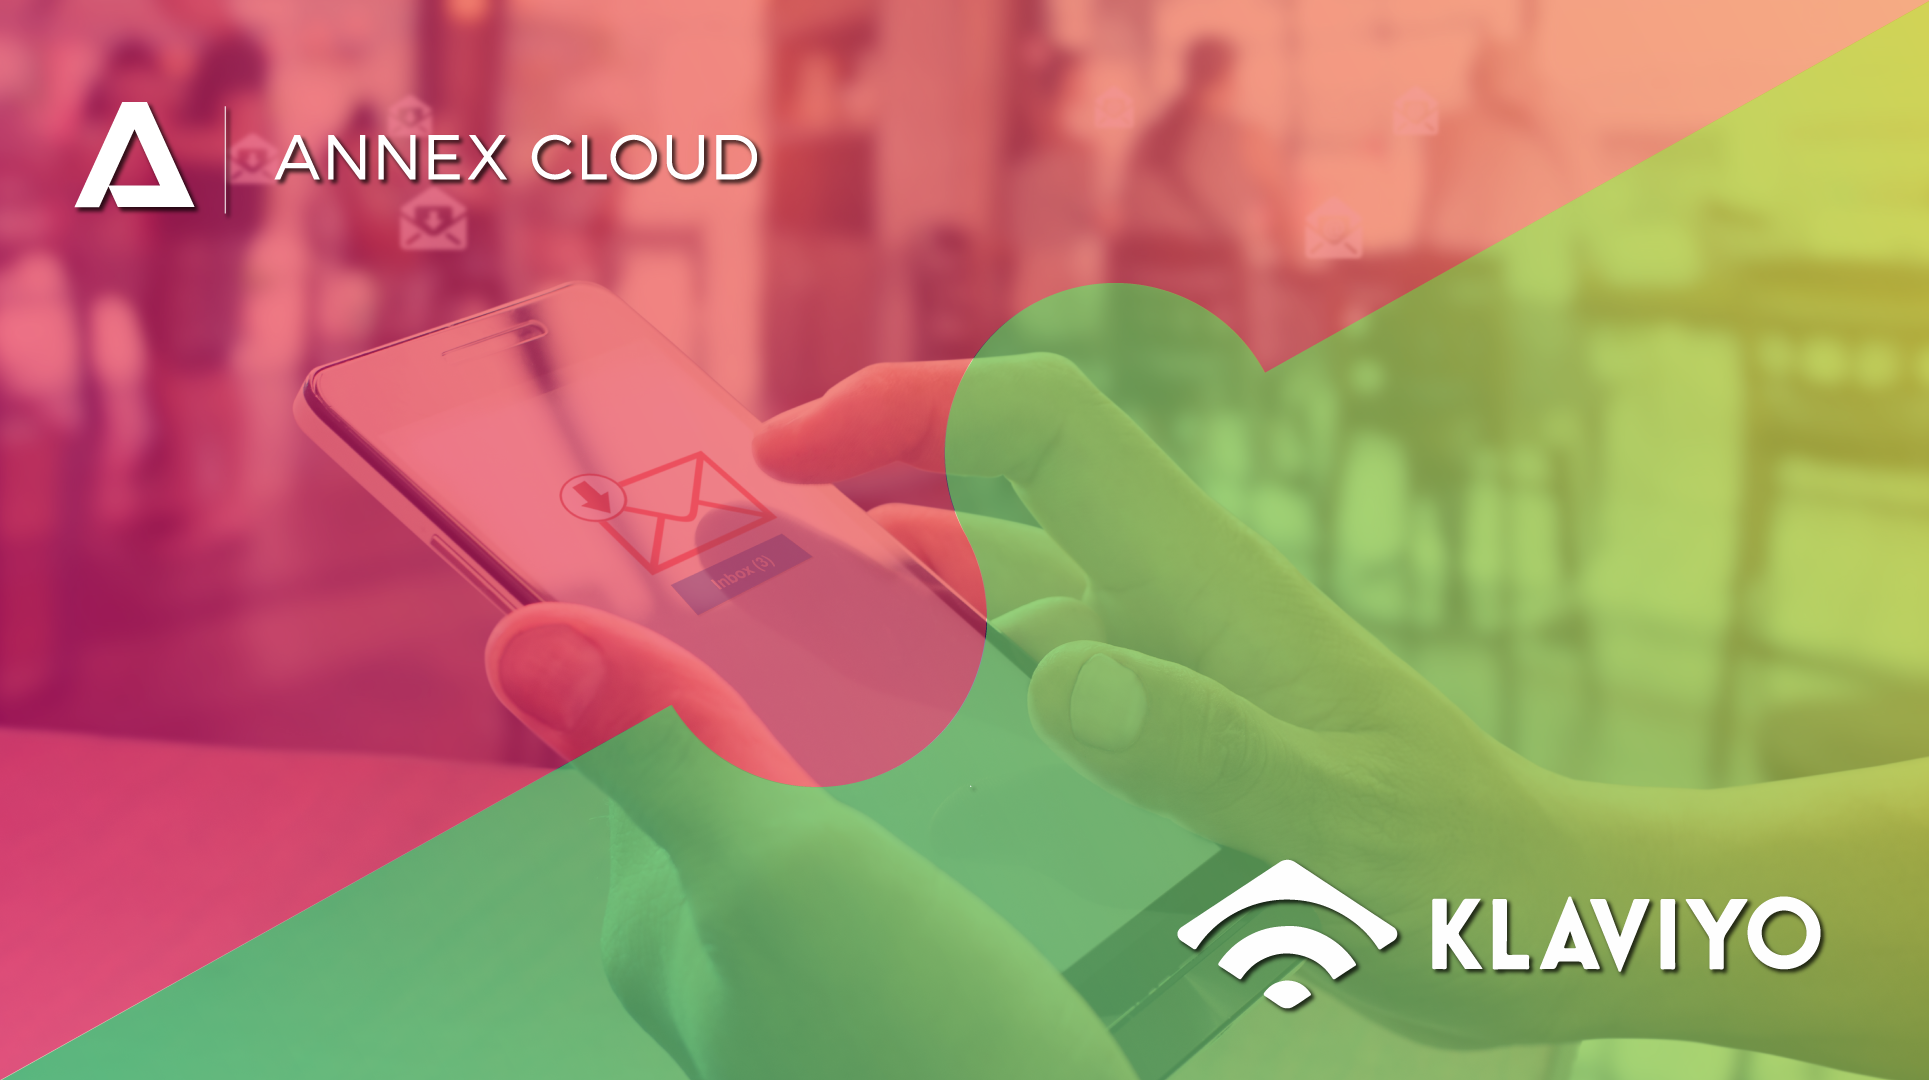 Customer loyalty and experience solutions company Annex Cloud has partnered with Klaviyo